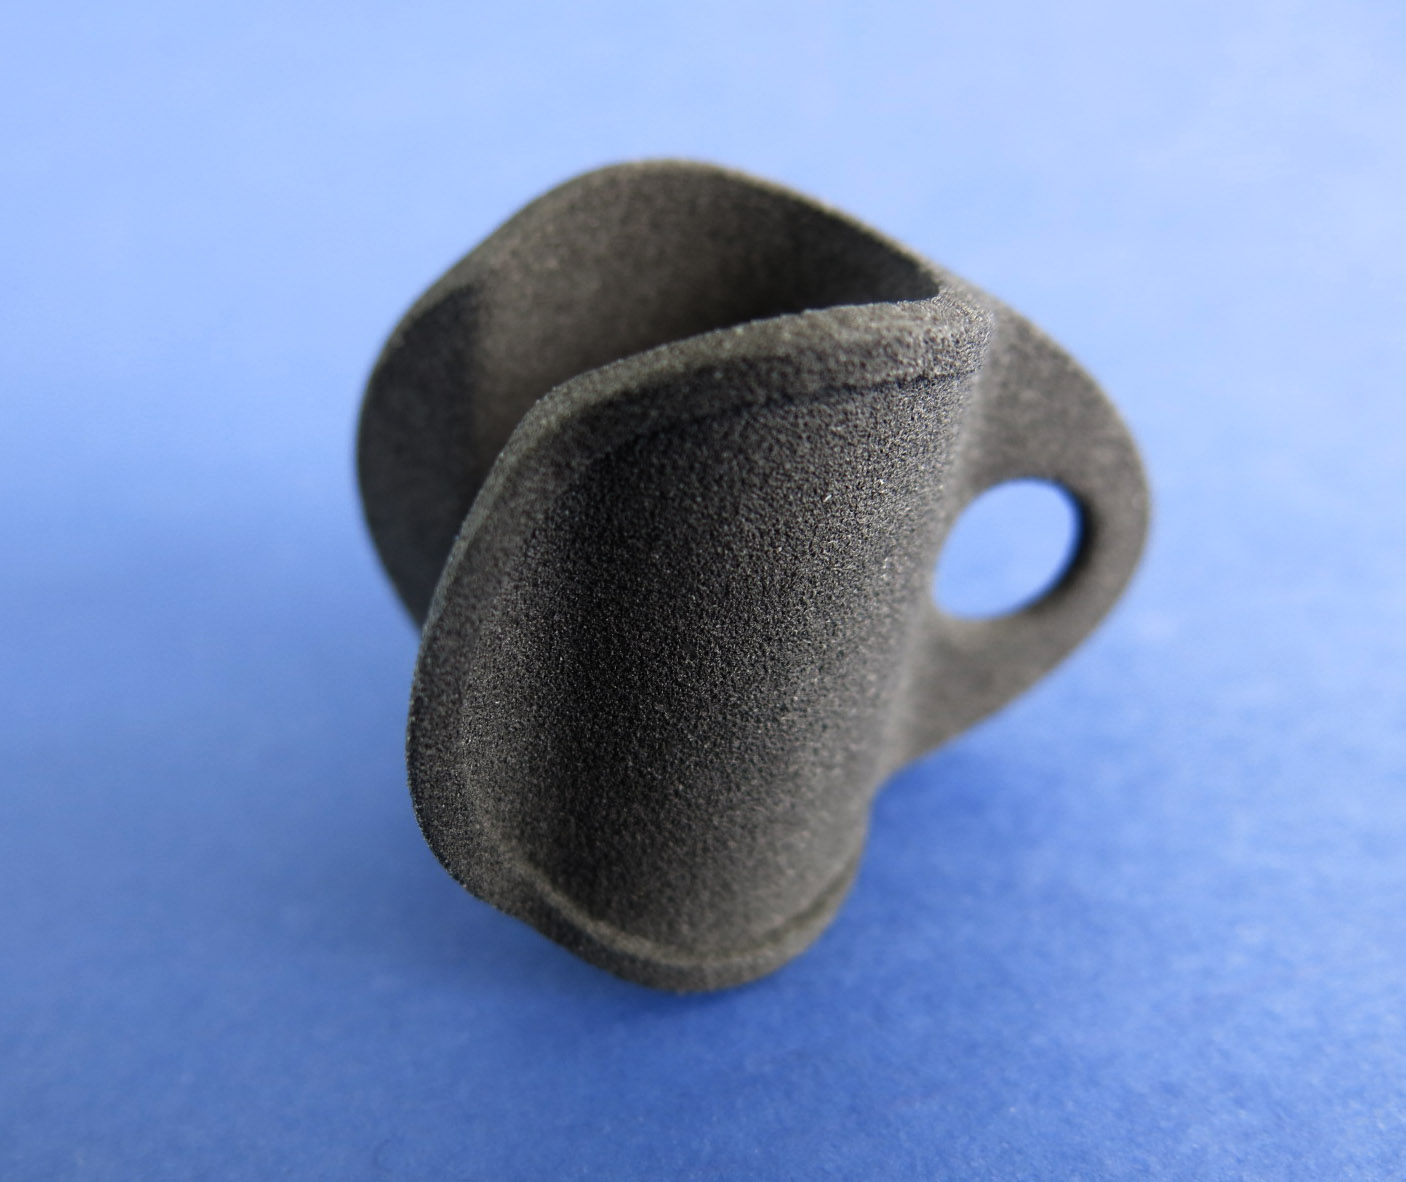 3D printed objects with CarbonMide